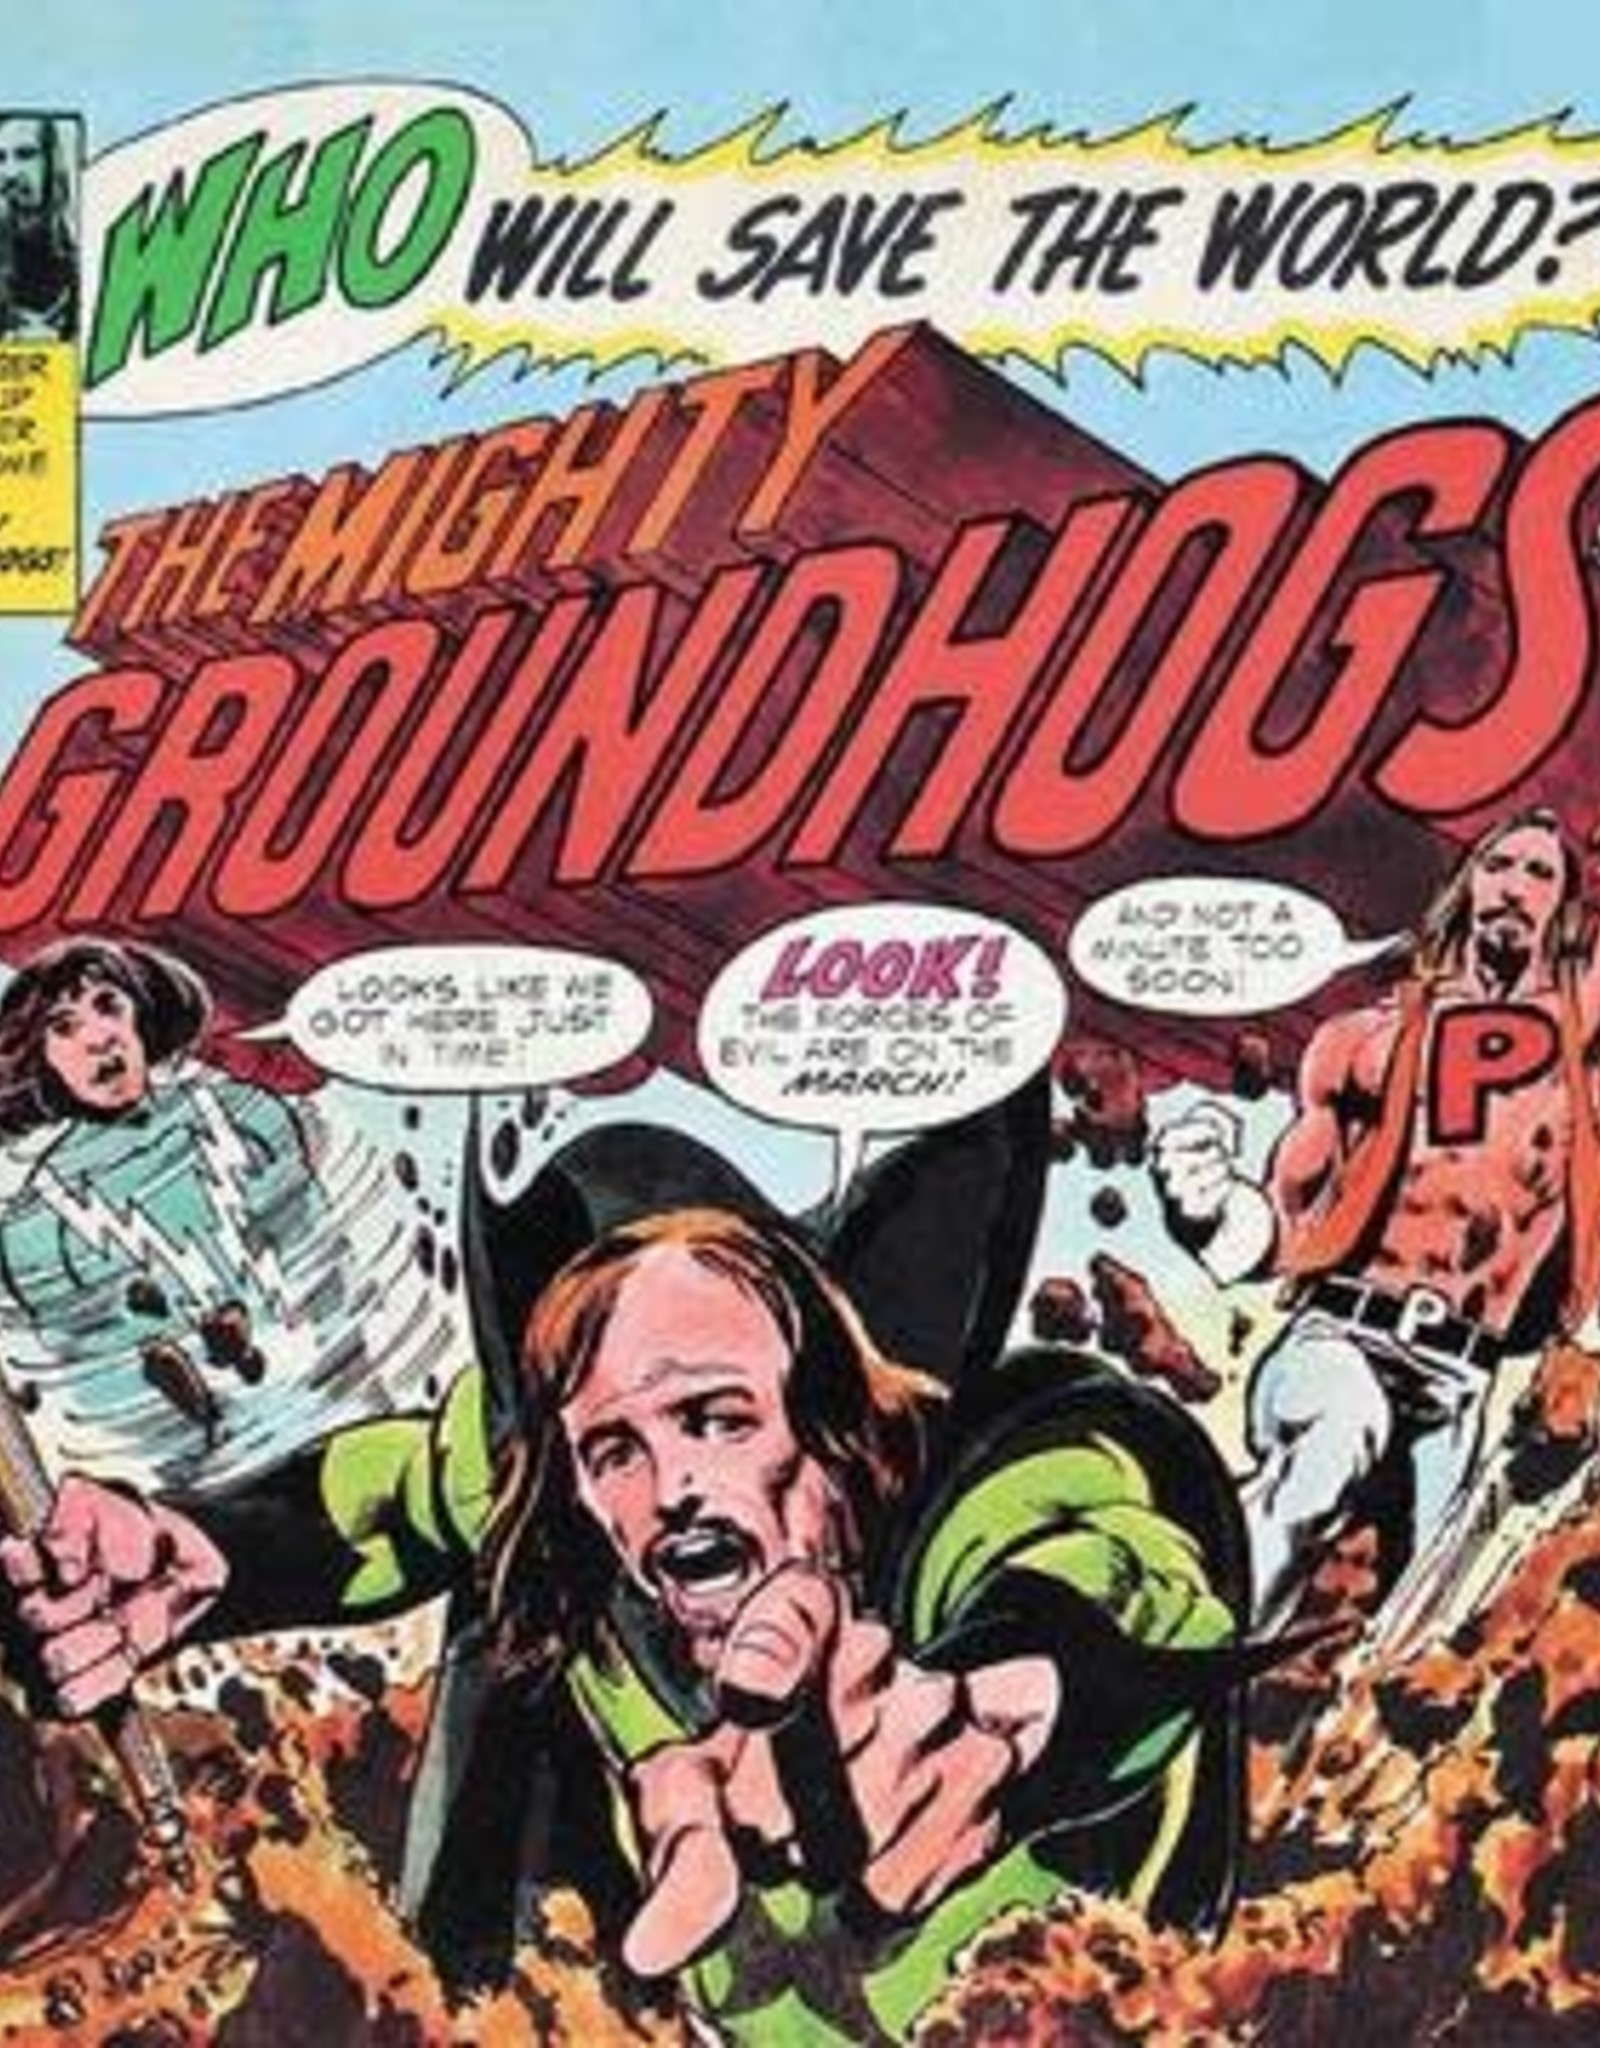 Groundhogs - Who Will Save The World (Deluxe/Yellow Vinyl/Dl Card) (RSD 6/21)